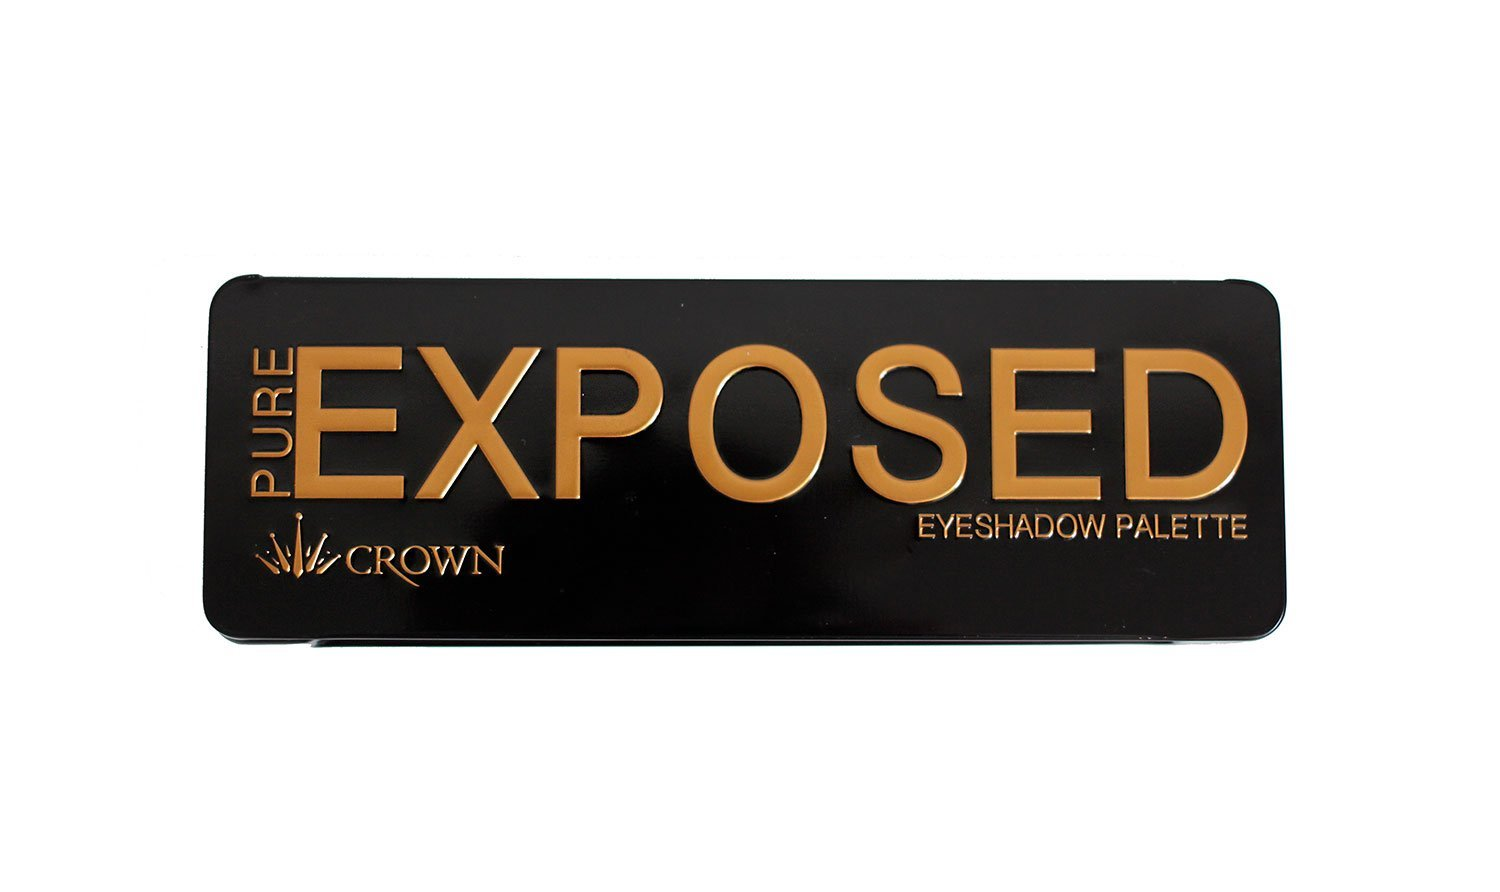 Pure Exposed Eyeshadow Palette - Crownbrush